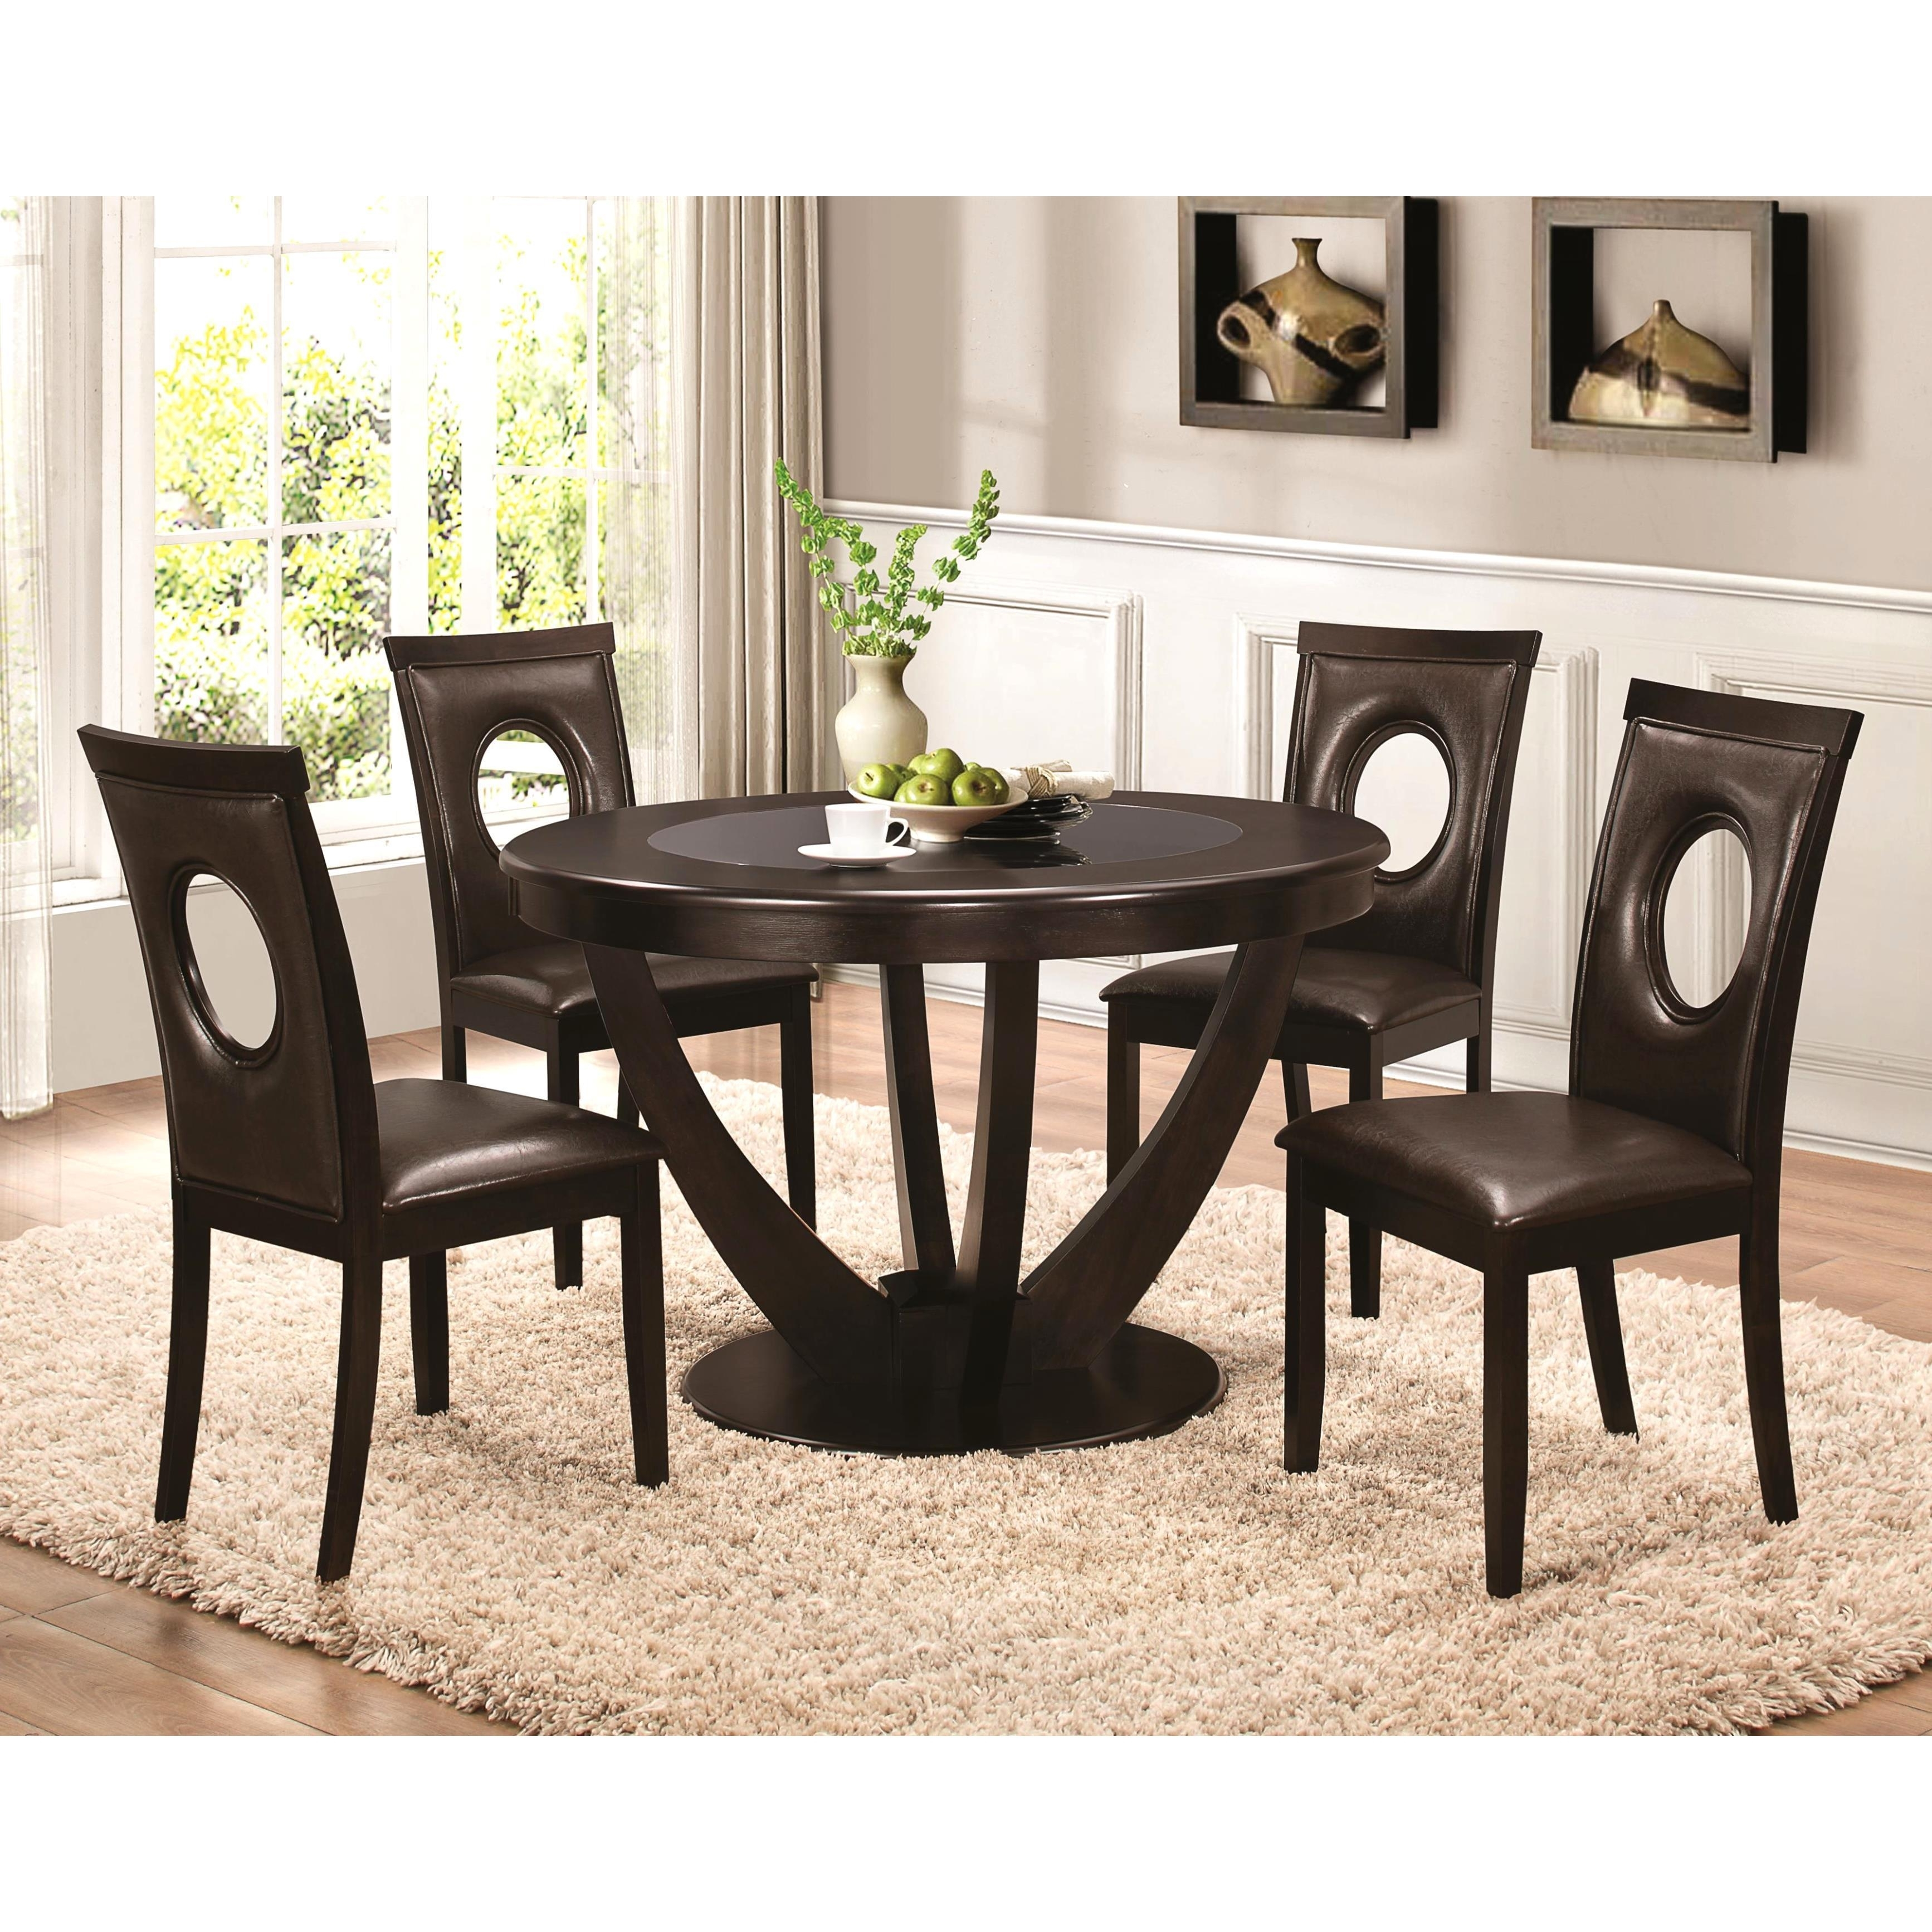 Shop Valencia Casual 5 Piece Round Dininig Set With Black Tempered Intended For Newest Valencia 72 Inch 7 Piece Dining Sets (View 17 of 20)